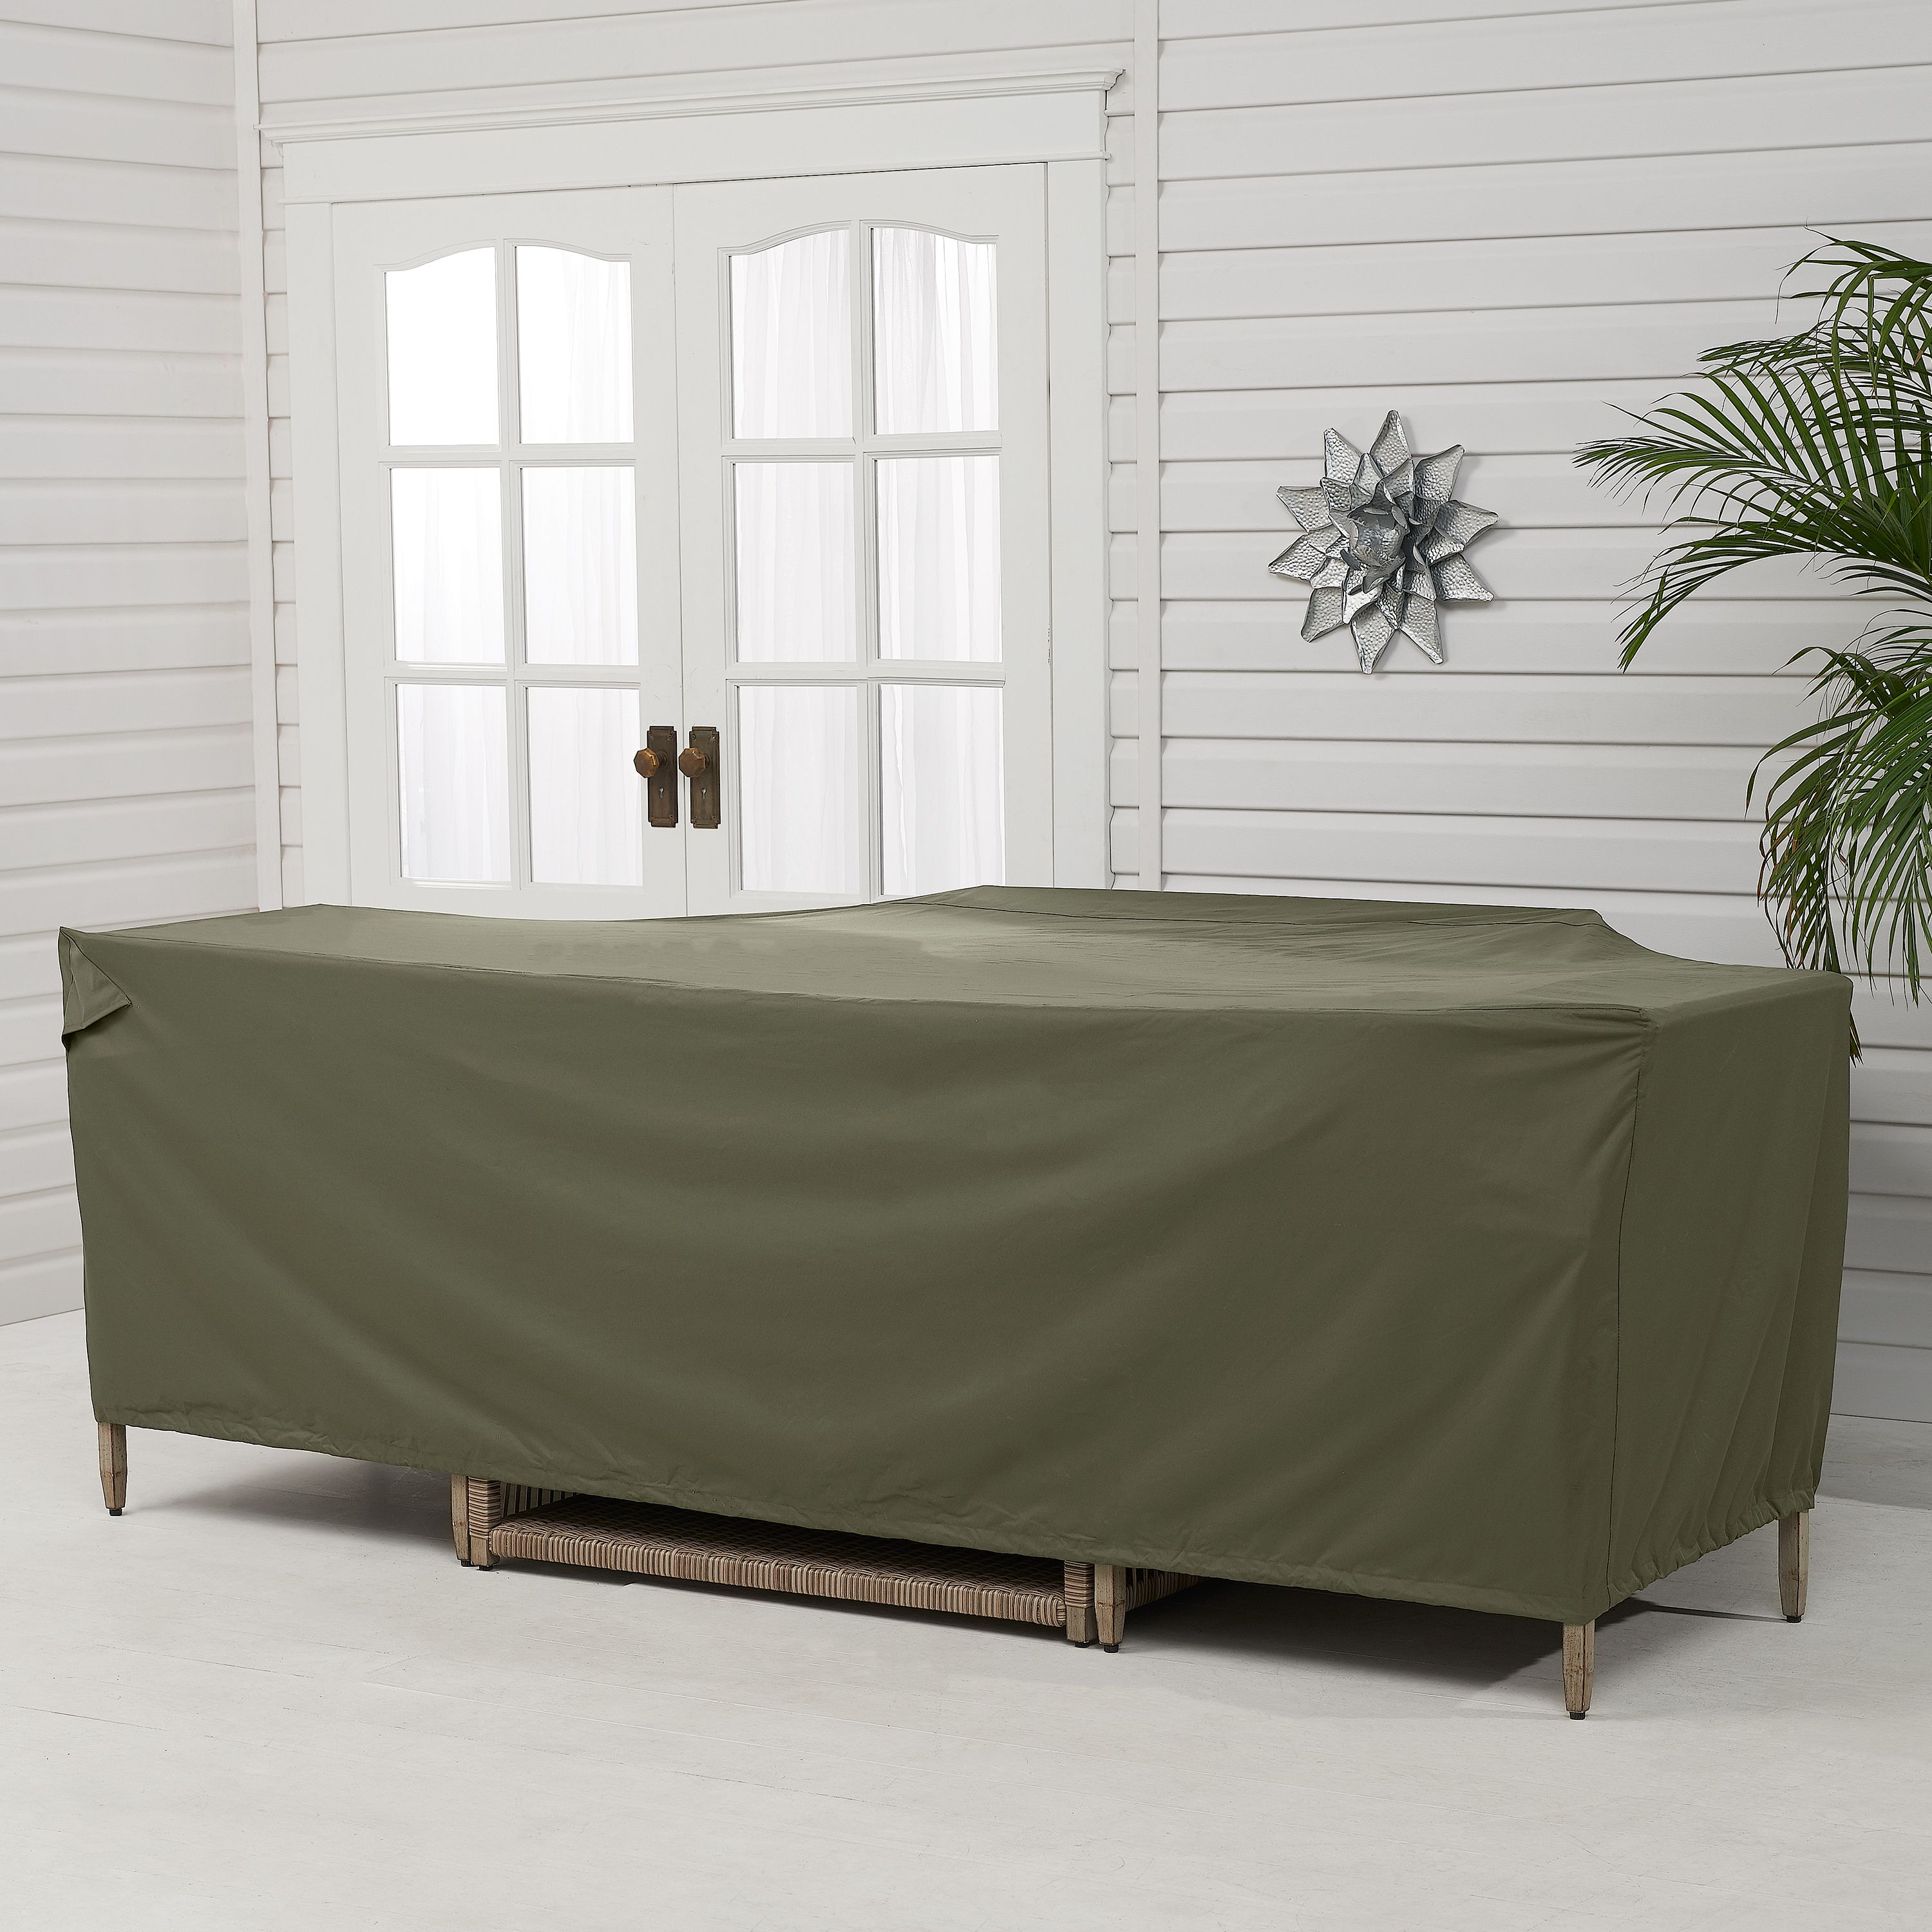 Waterproof Garden Bbq Patio Furniture Cover Table Seat Covers